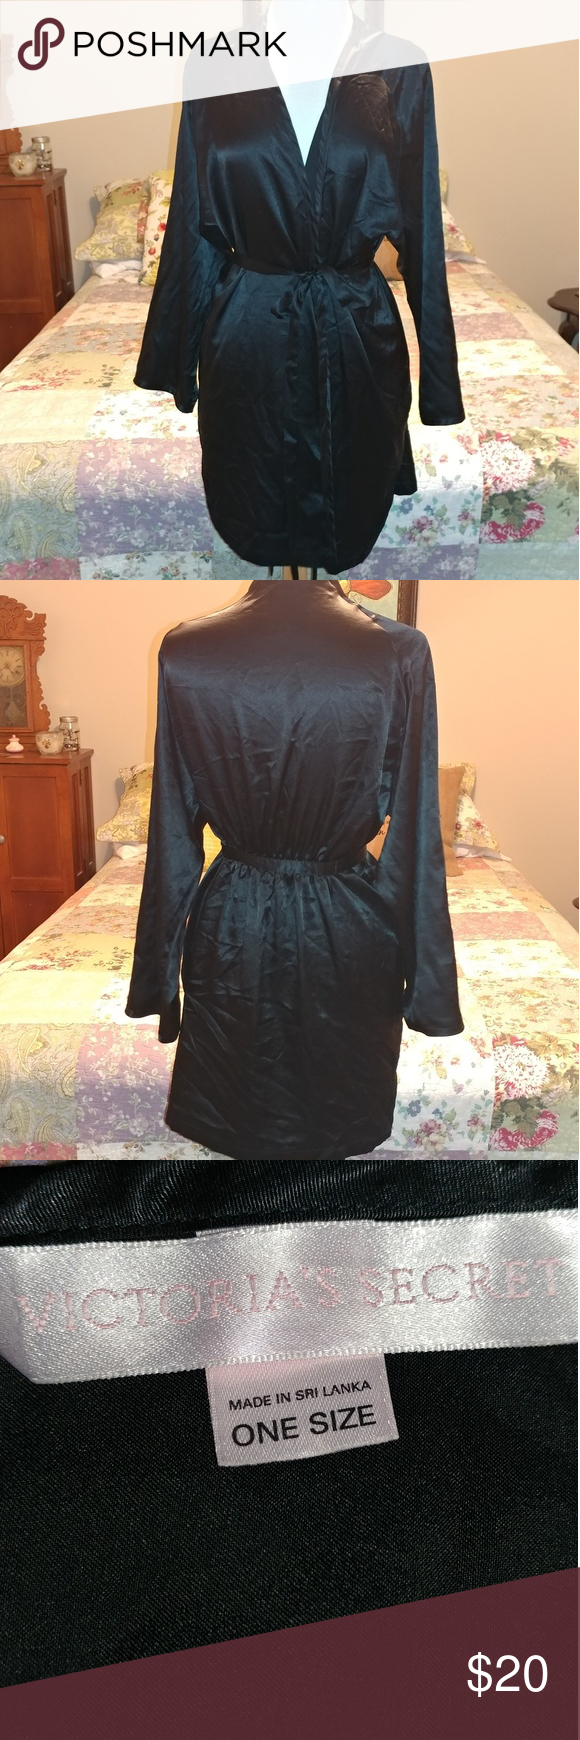 """Victoria's Secret robe From the 90s!  Black midi robe with pockets, interior tie and attached belt.  Measures approximately 33"""" long. Tag says one size, but this runs small and would fit a medium to maybe large, best.  Therefore, I am listing as a medium. Victoria's Secret Intimates & Sleepwear Robes"""